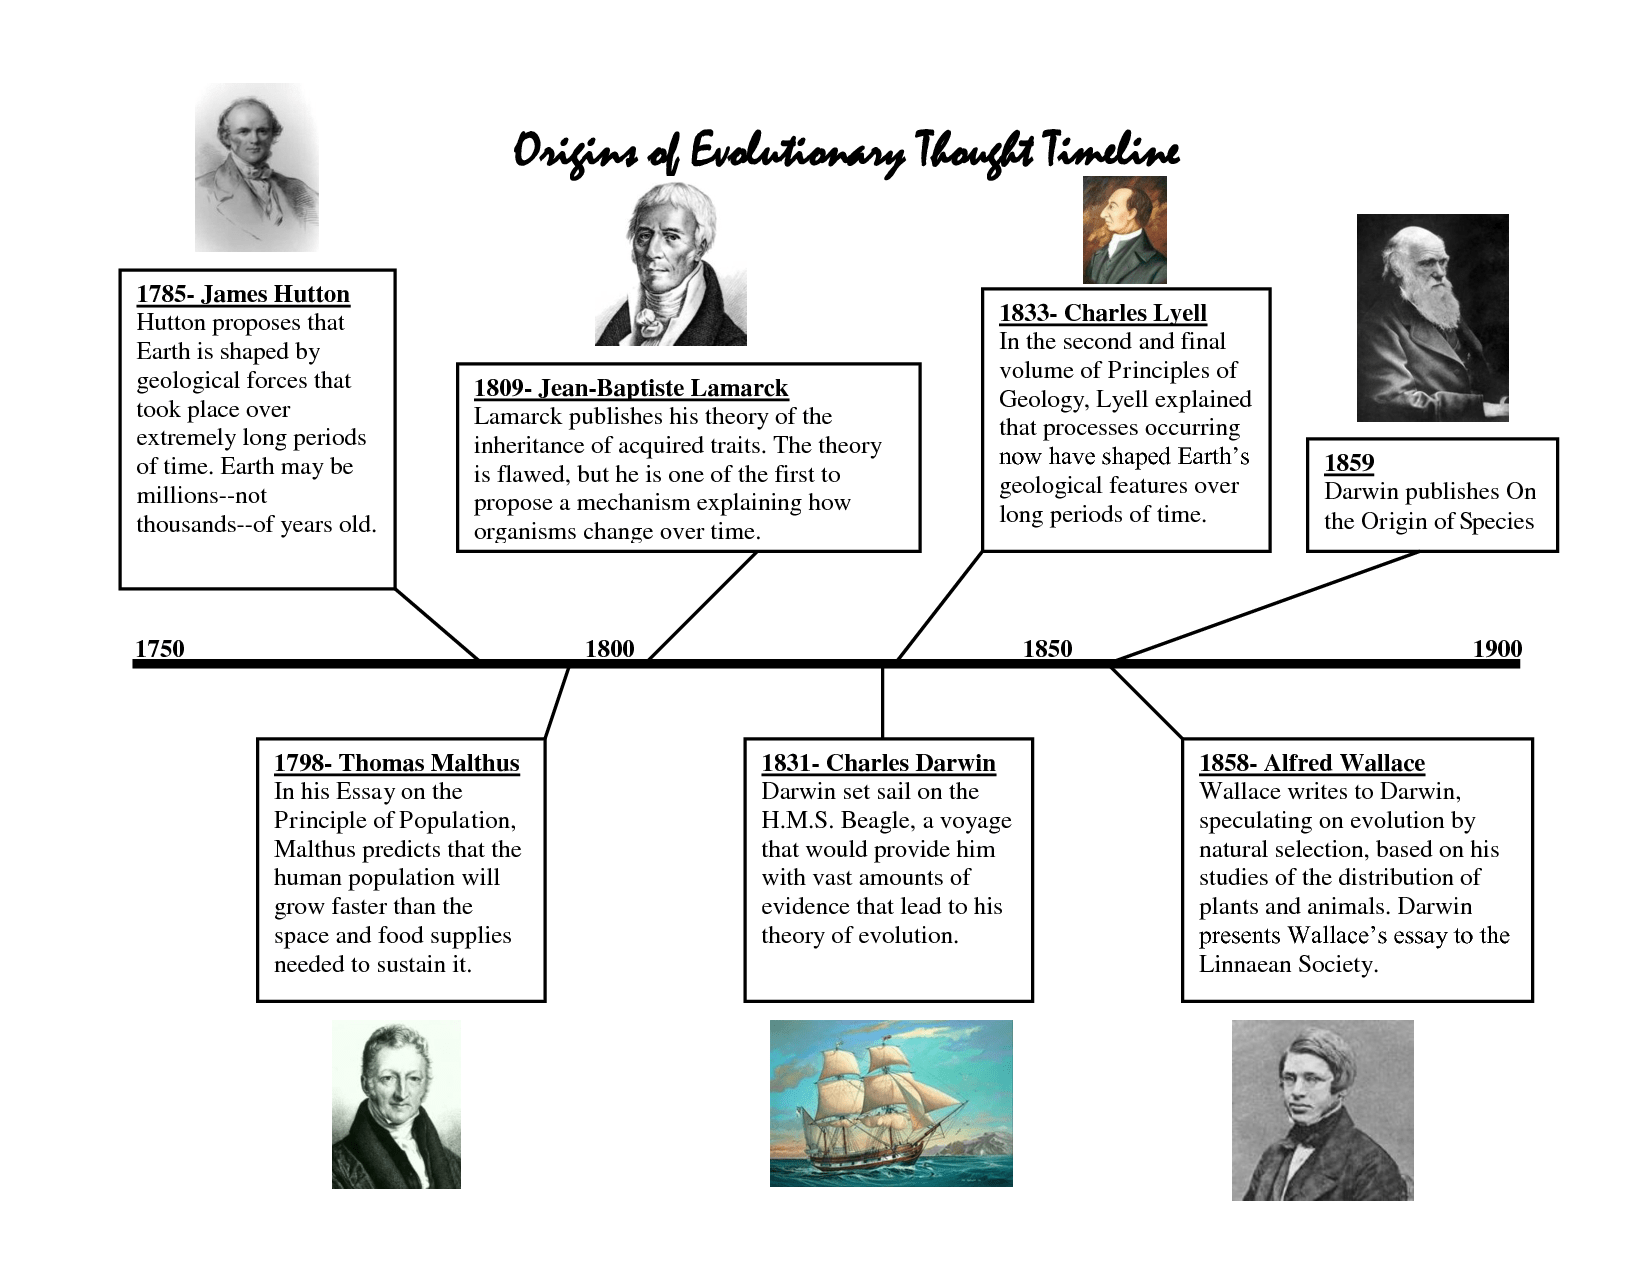 Theory Of Evolution: Theory Of Evolution History Timeline